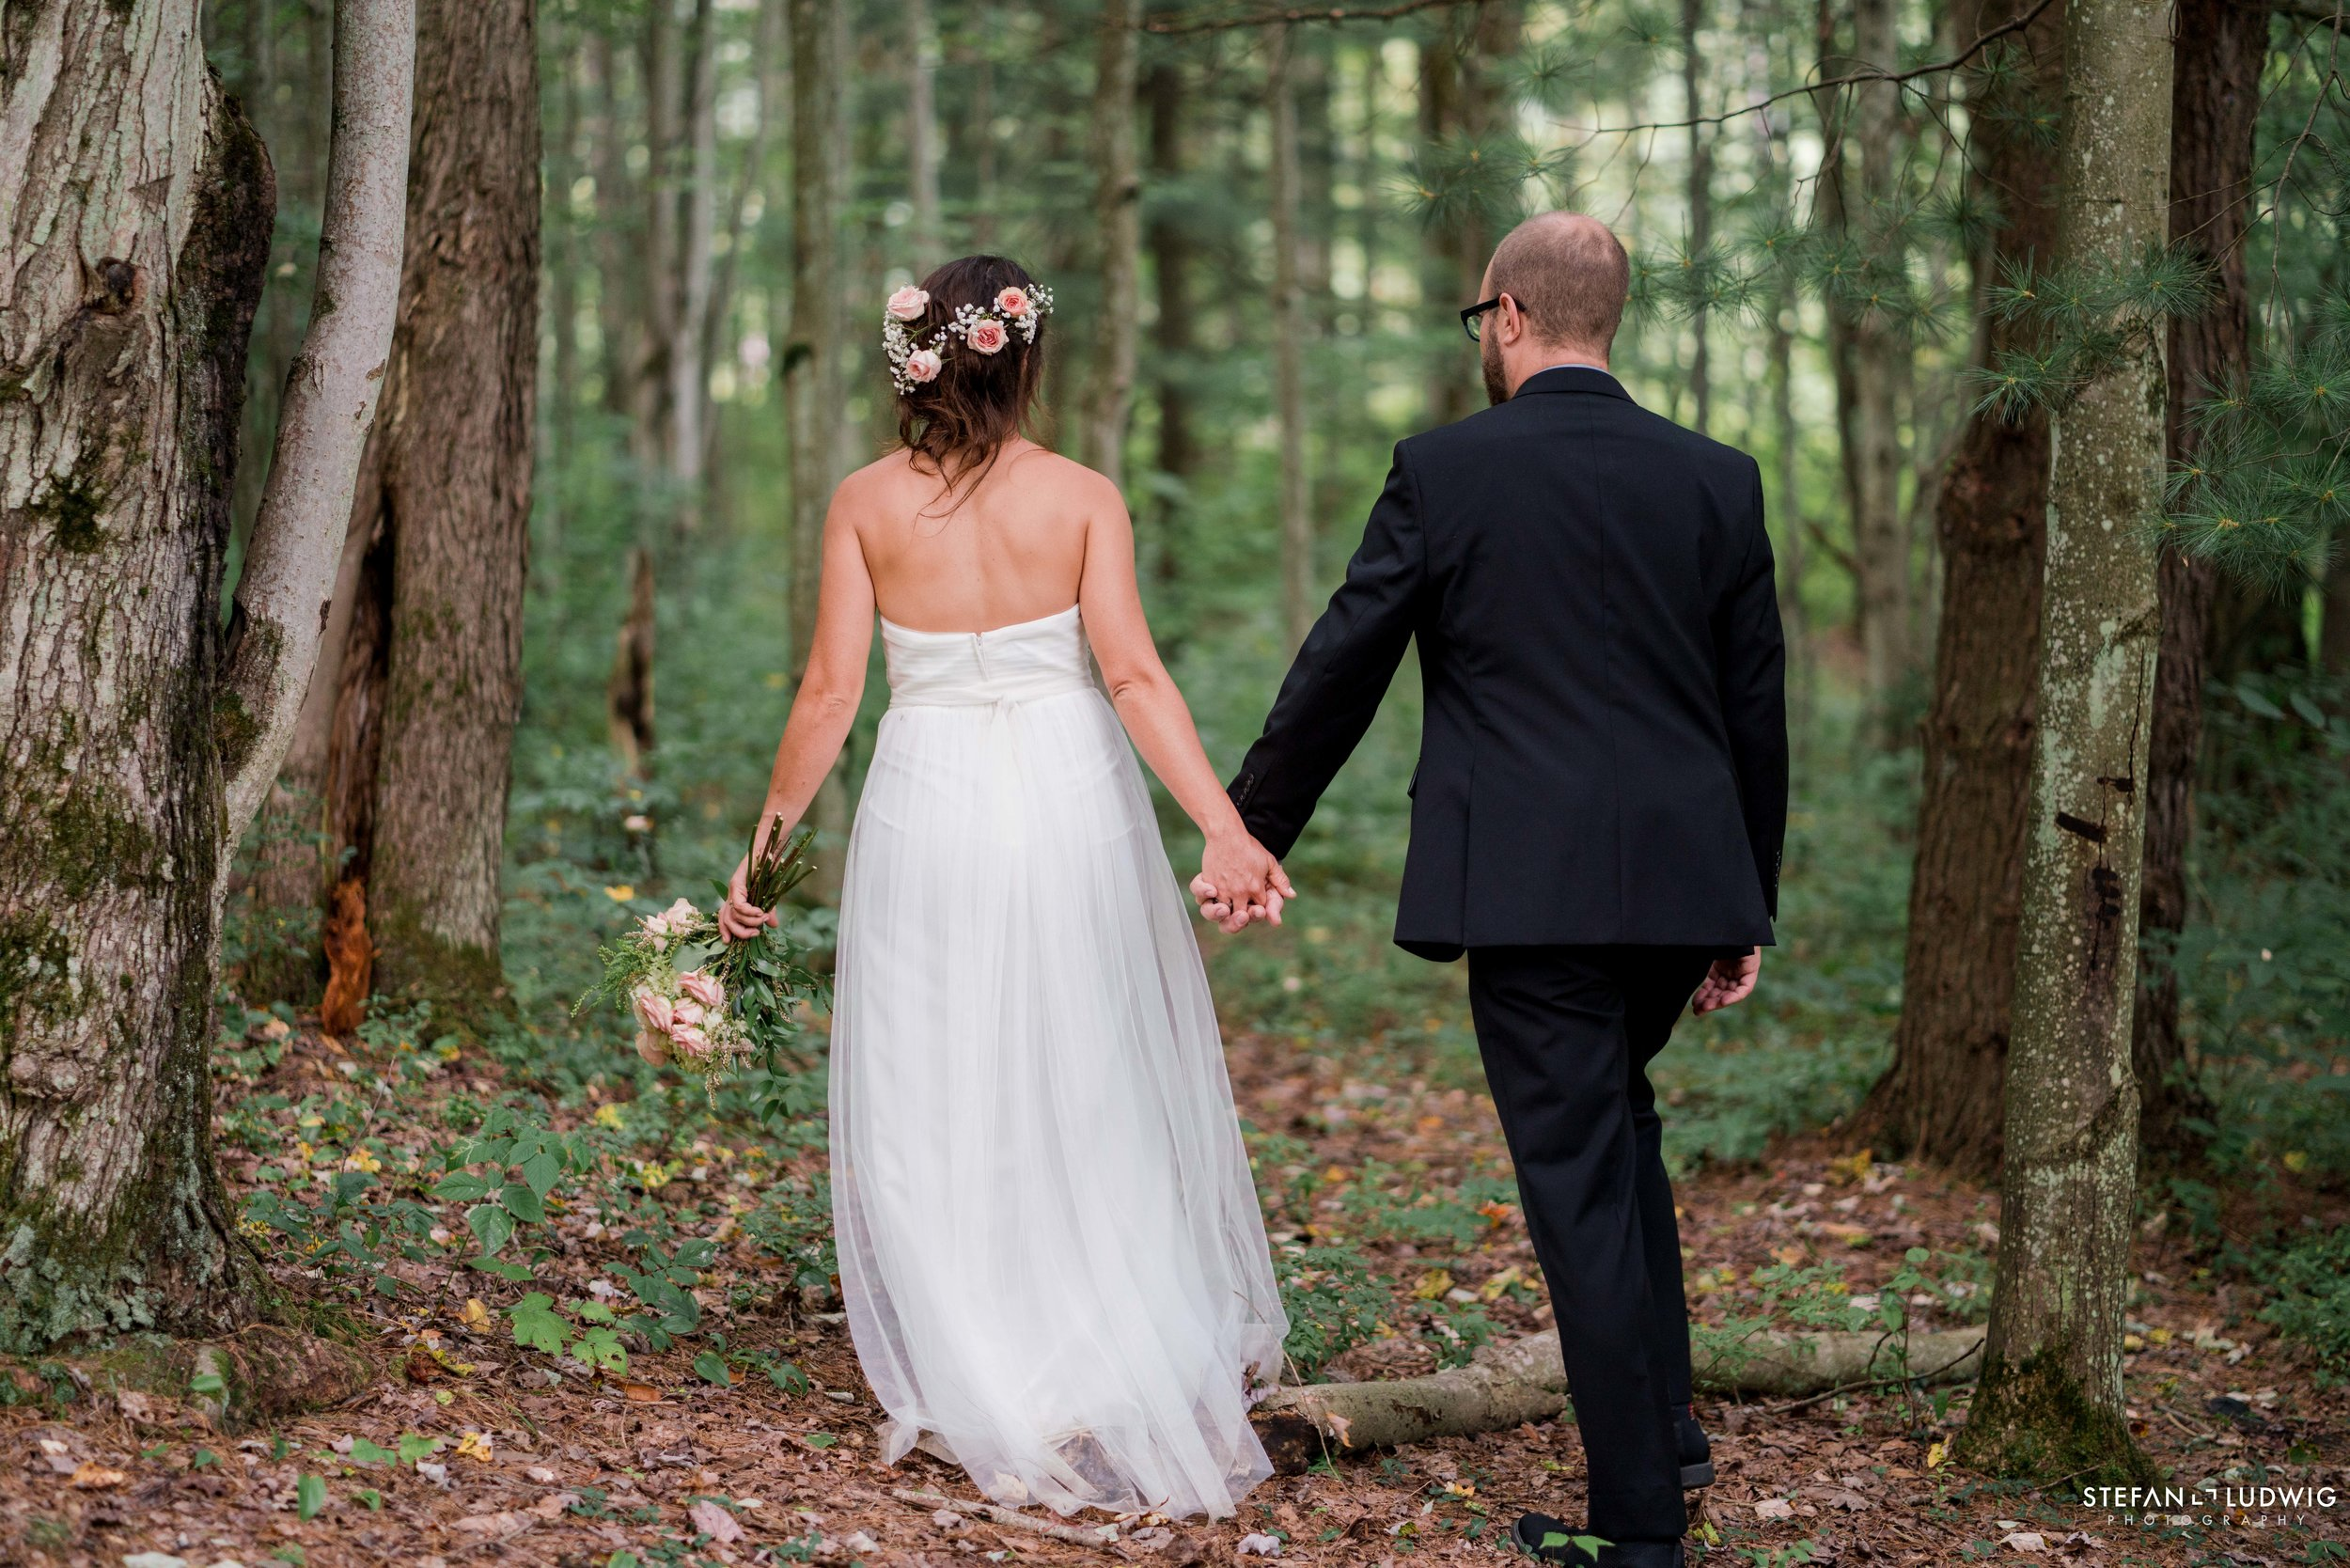 Blog Wedding Photography Mariana and John in Ellicottville NY by Stefan Ludwig Photography-46.jpg